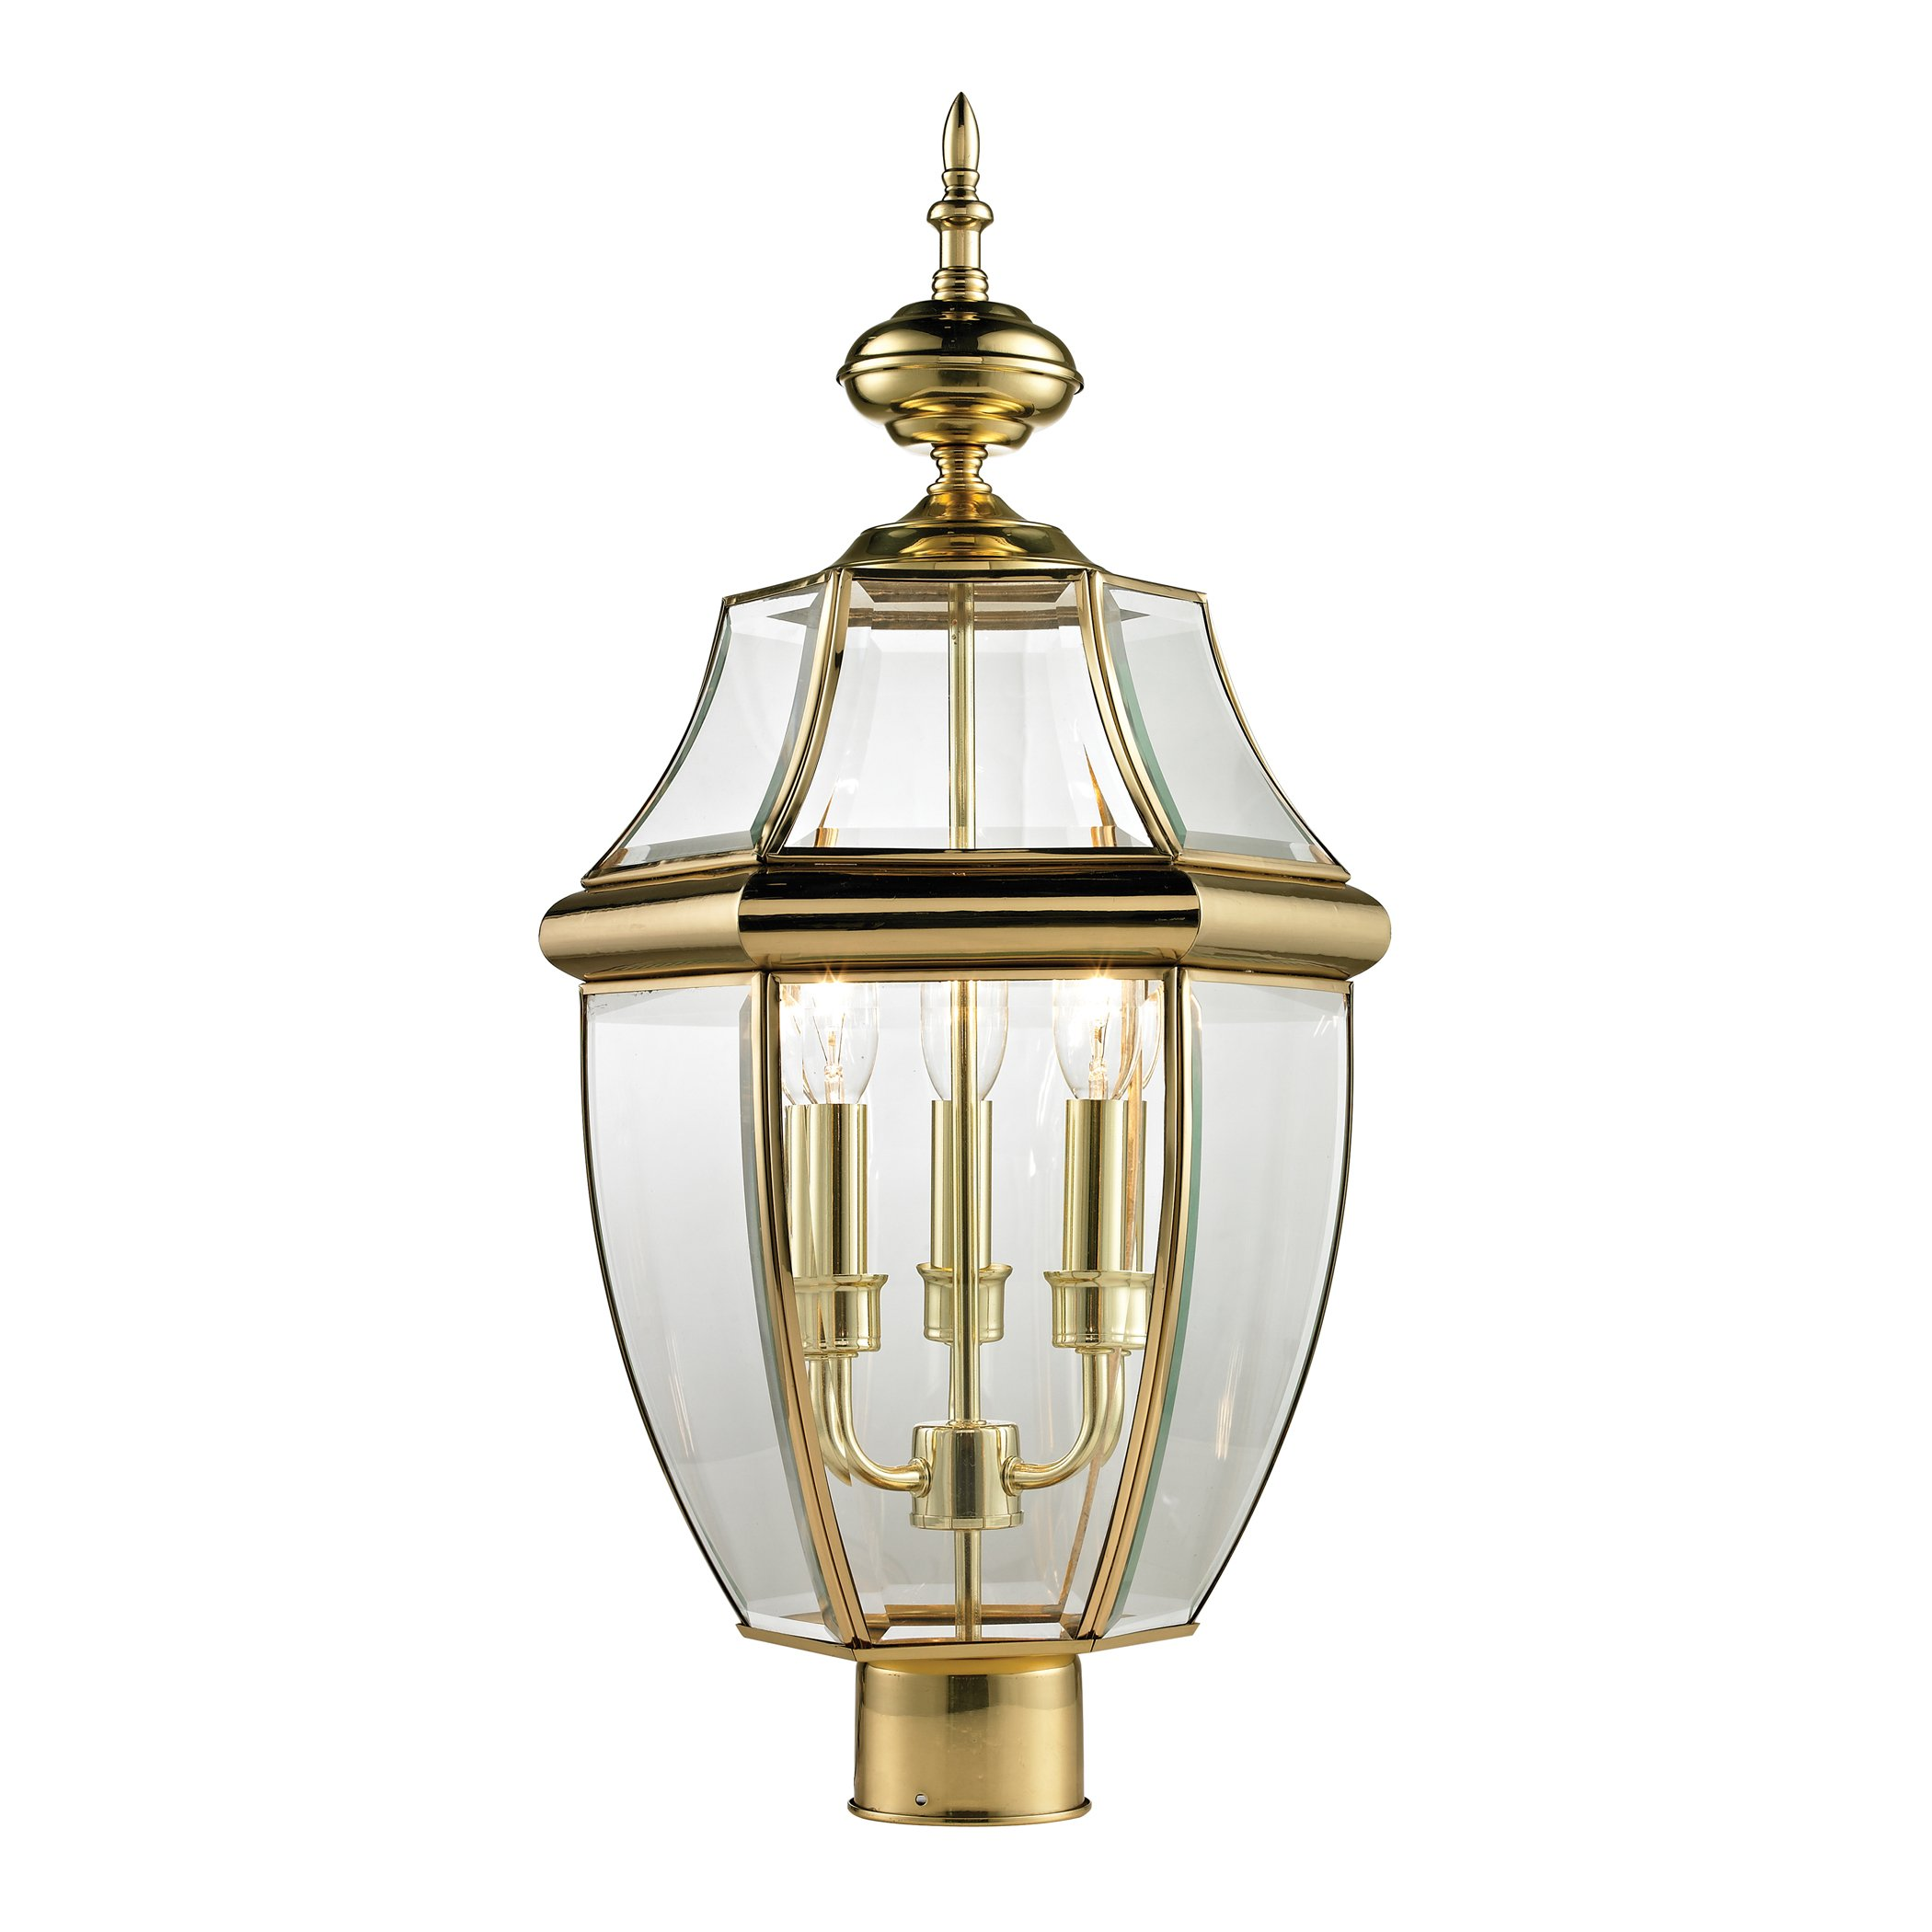 Thomas Lighting Ashford  Post Lantern, Large, Antique Brass Finish